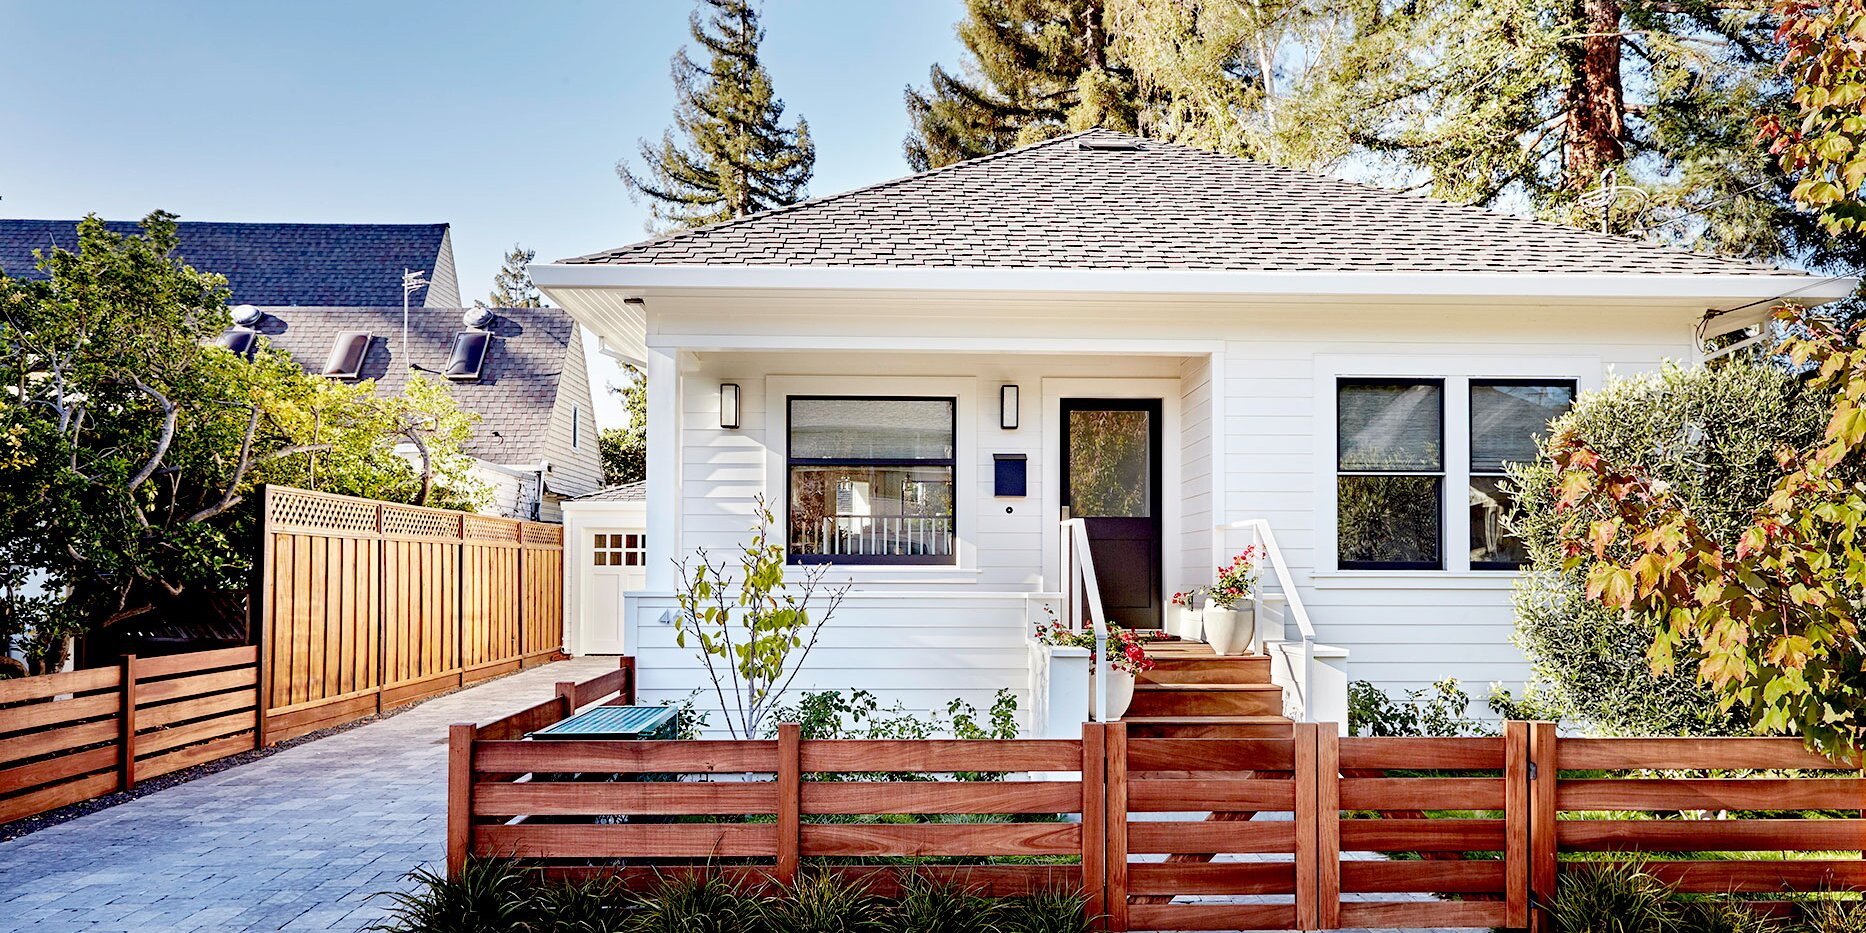 These Are the 6 Remodeling Projects to Prioritize if You Bought a Fixer-Upper